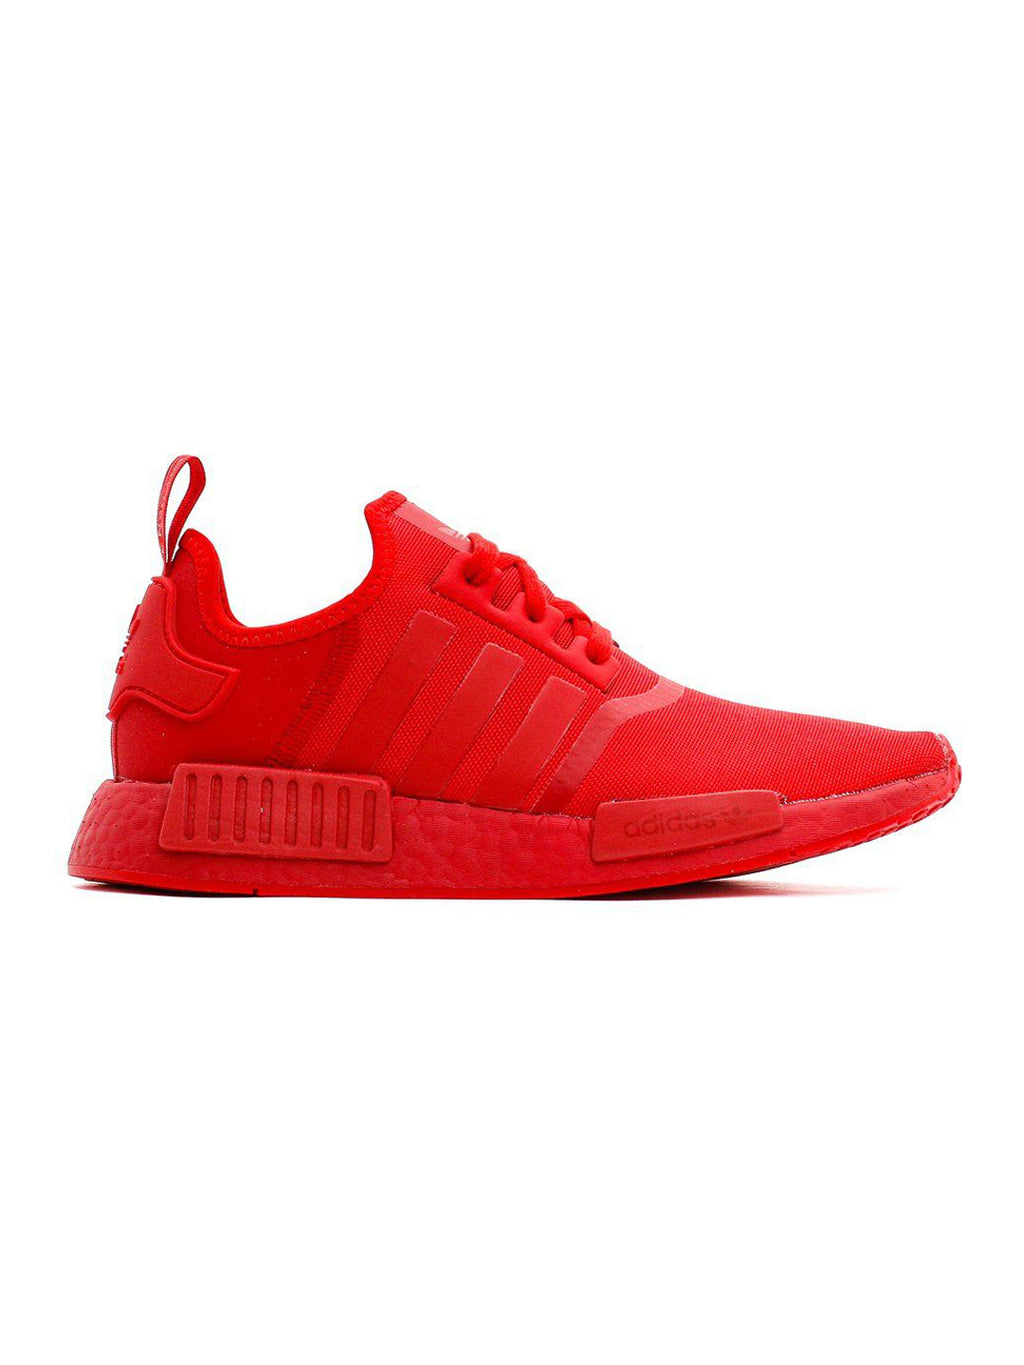 Red NMD R1 Boost Sneakers